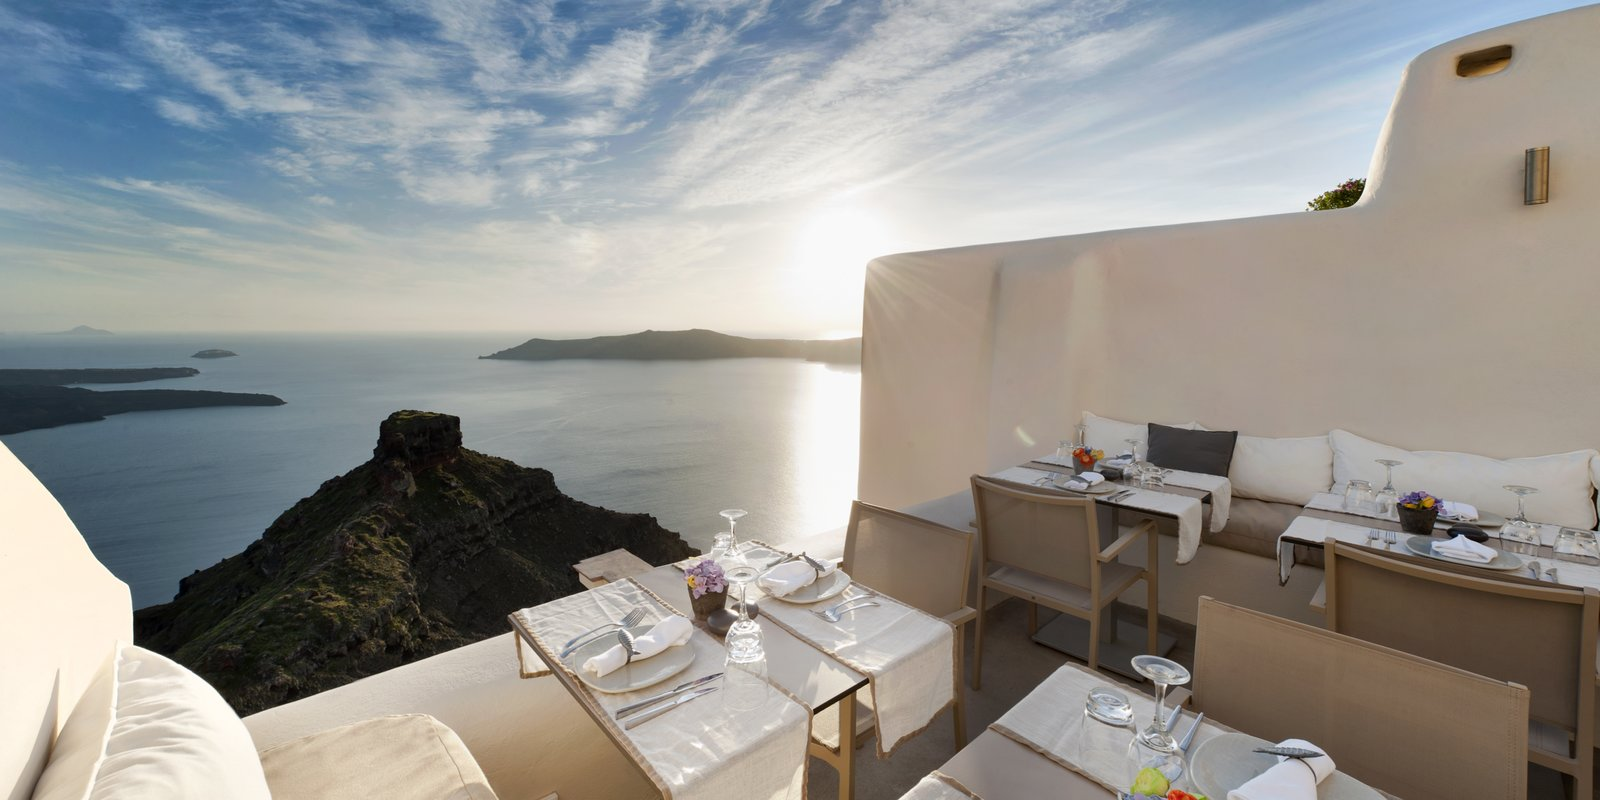 At this modern Cycladic boutique hotel, you can enjoy breathtaking views of Santorini's majestic caldera from the pool, your bedroom or the resort's fine dining restaurant.